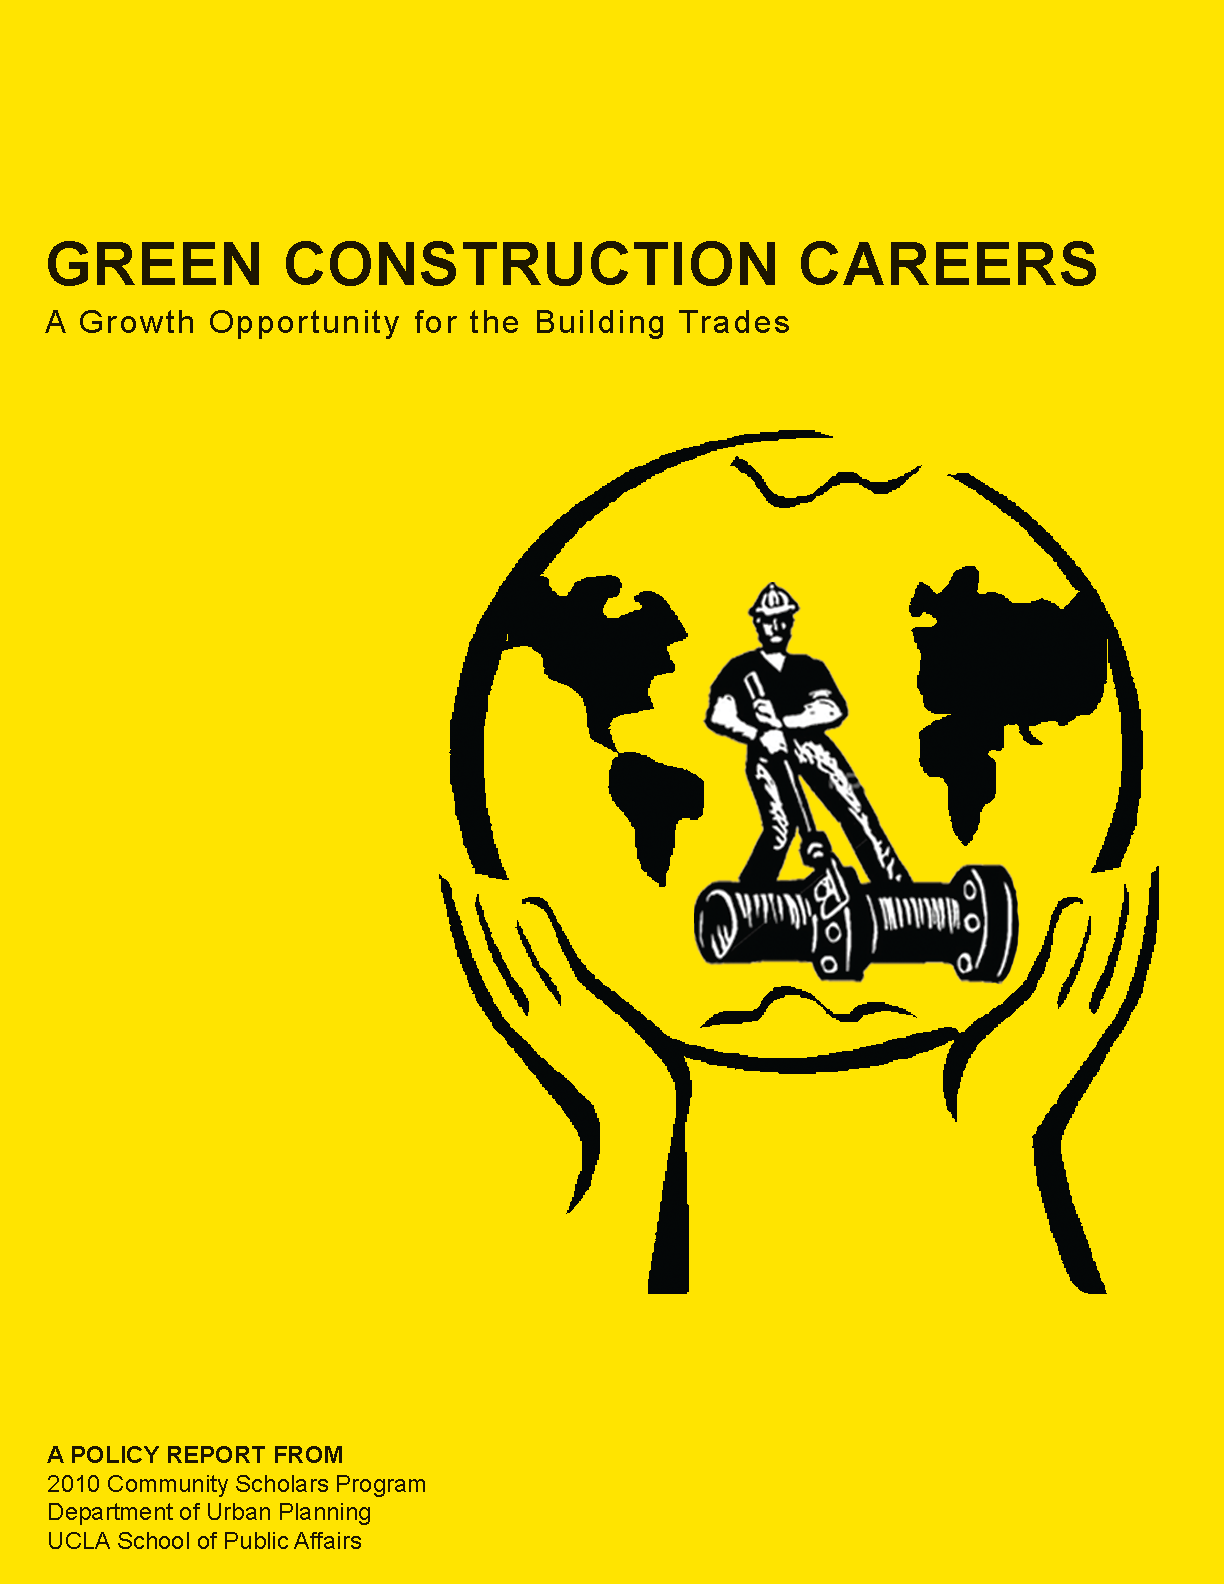 Panel 1: Green Construction Careers